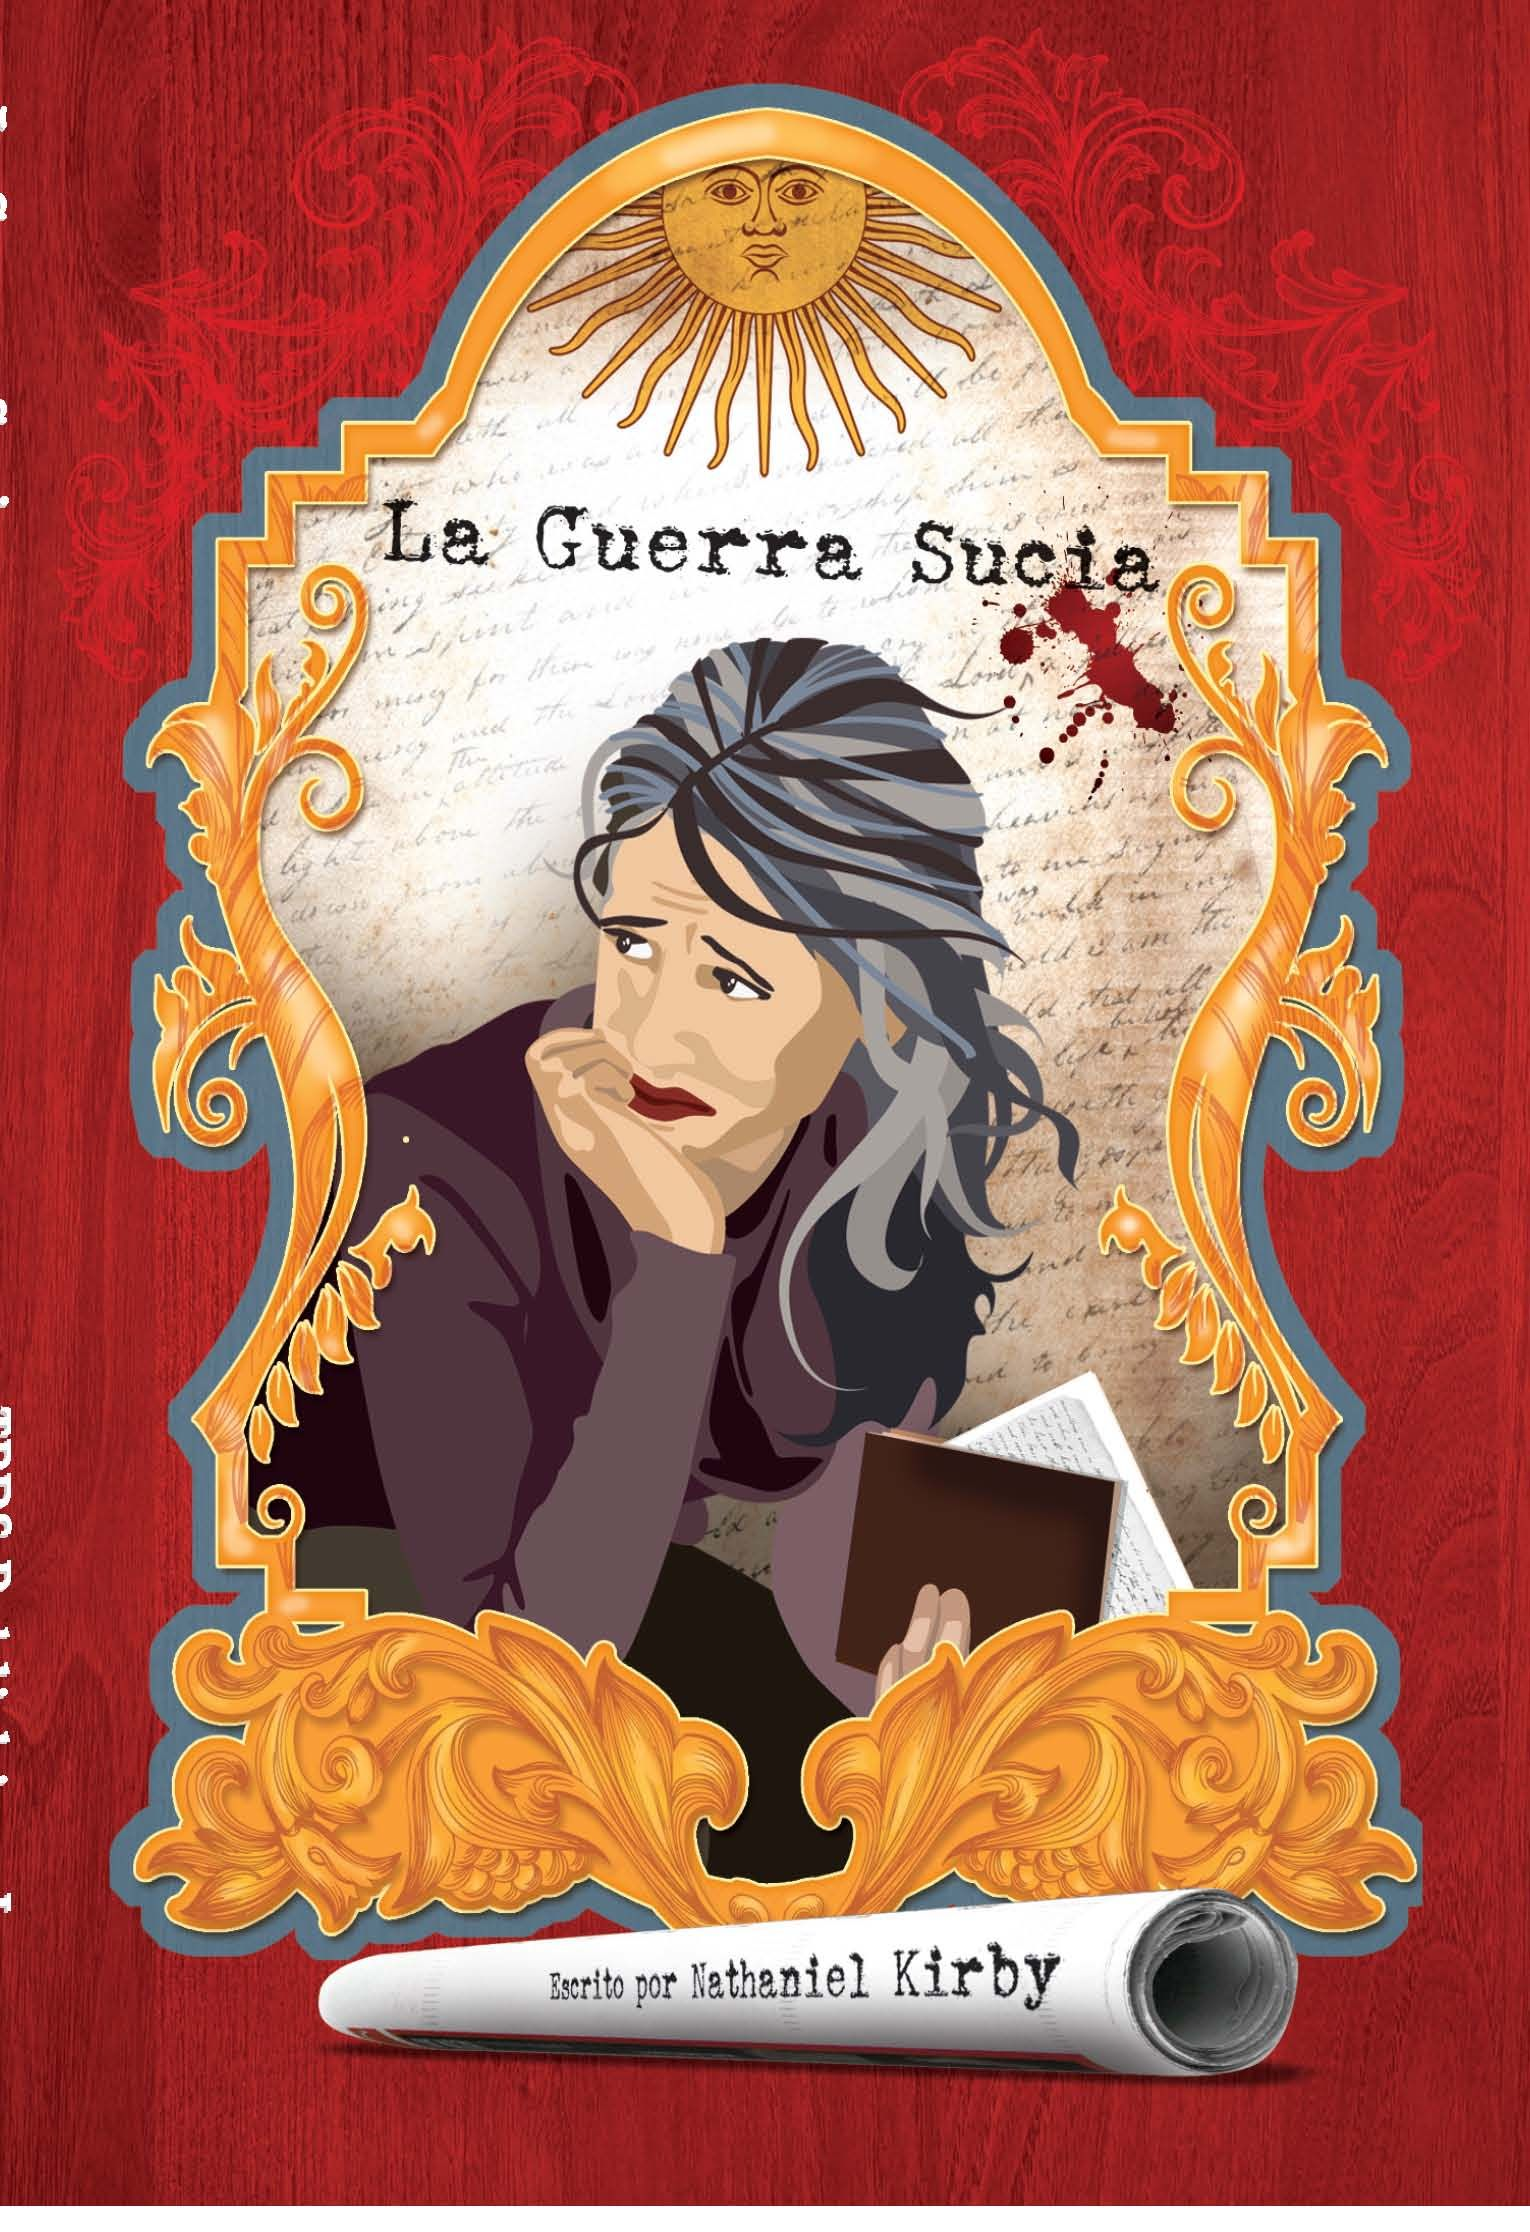 la guerra sucia novel level novel past tense american la guerra sucia novel level 3 4 novel past tense american journalist and single mother leslie corrales travels to to investigate the